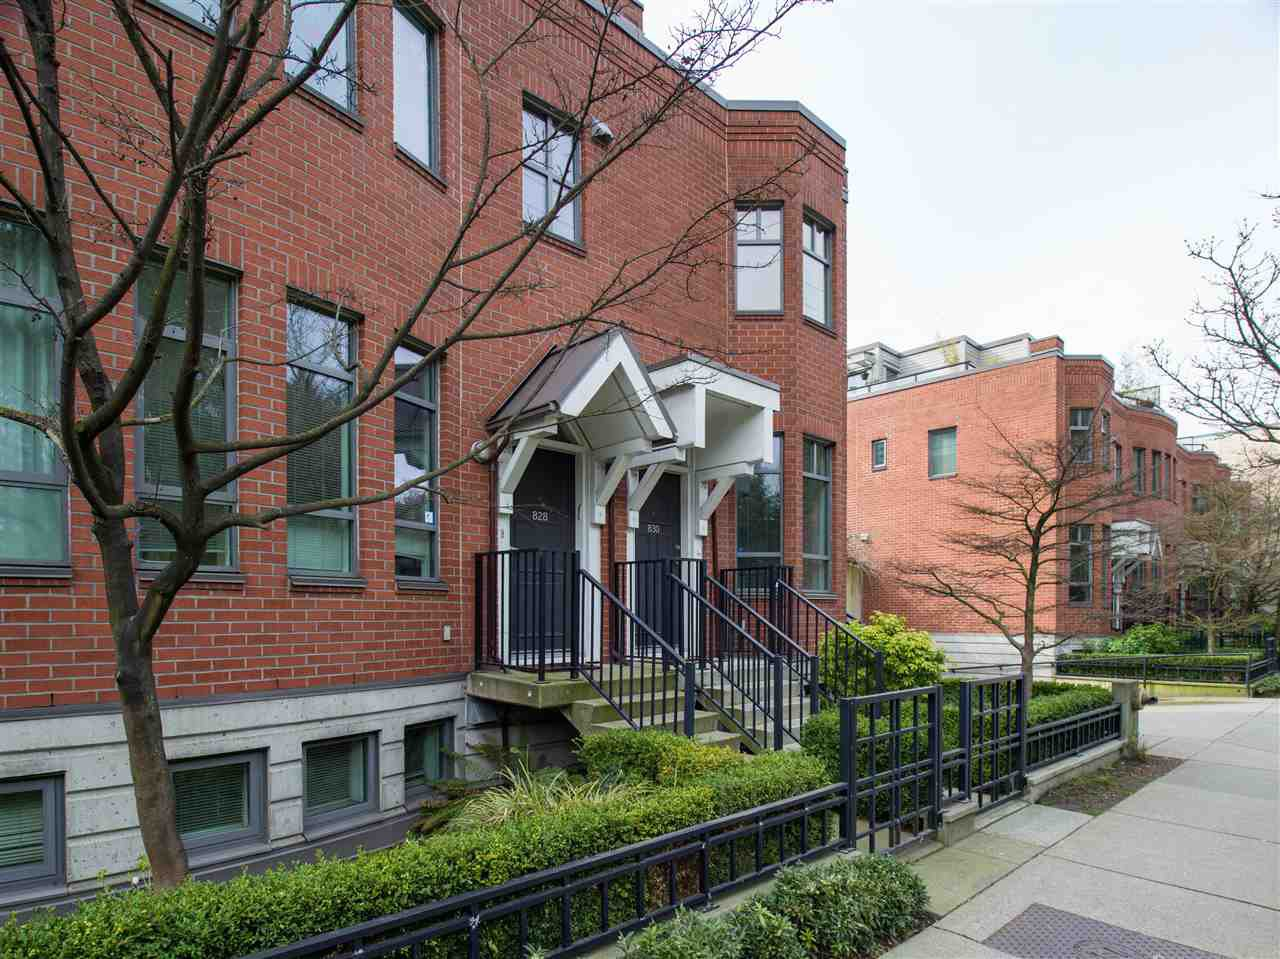 Main Photo: 830 West 6th Avenue in Vancouver: Fairview VW Townhouse for sale (Vancouver West)  : MLS®# R2444950